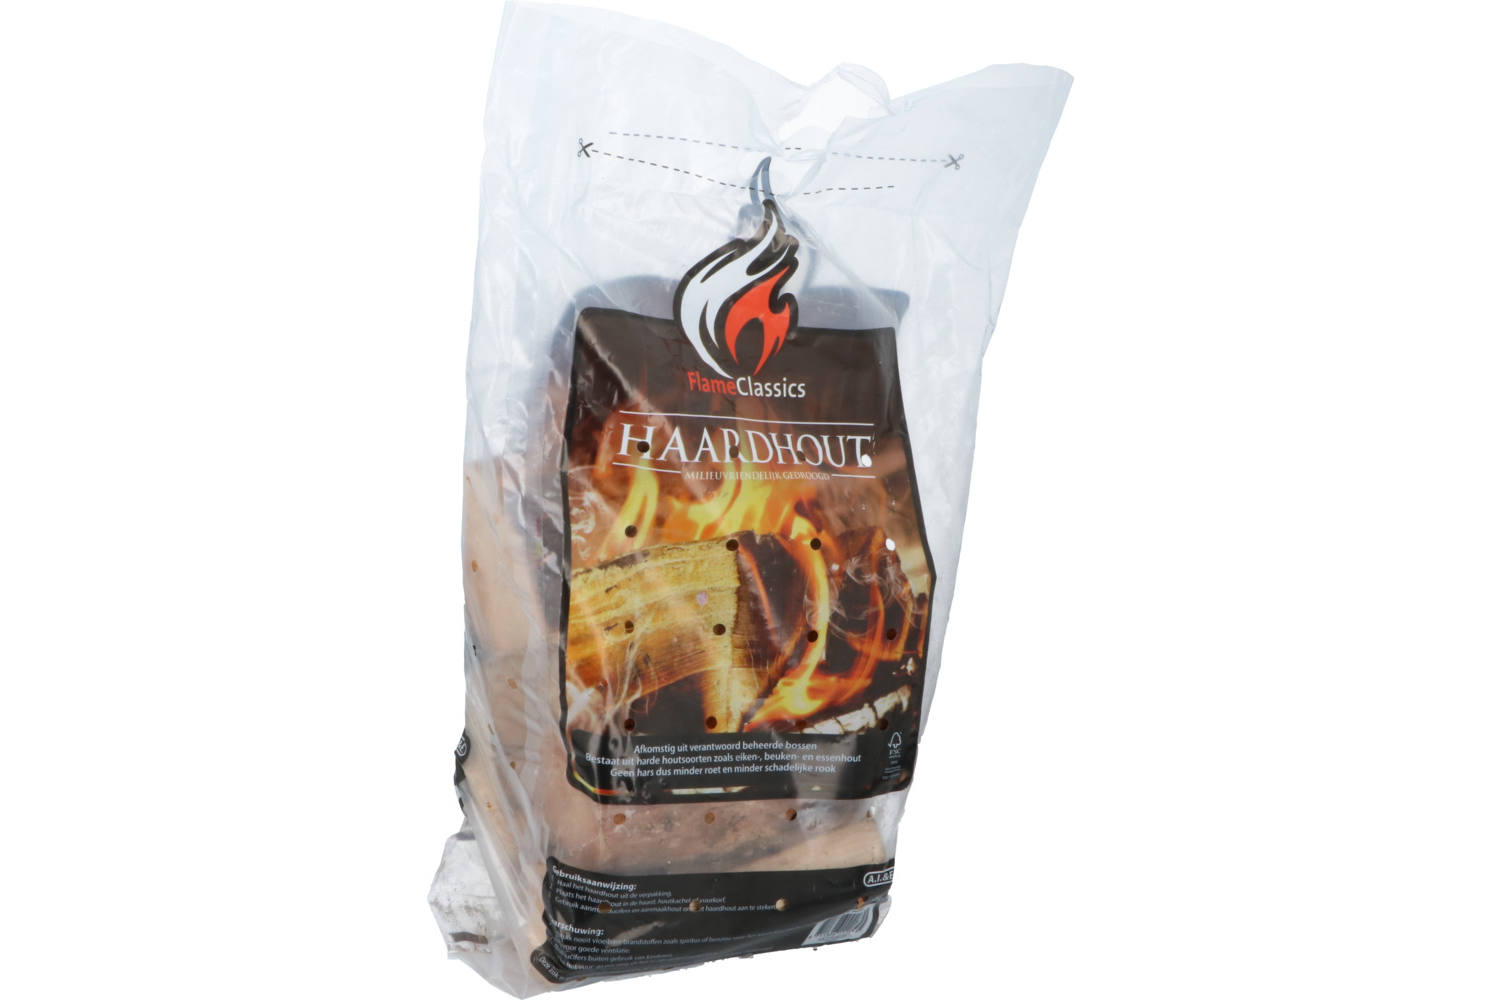 Fireplace wood, Flame Classics, in plastic bag 1